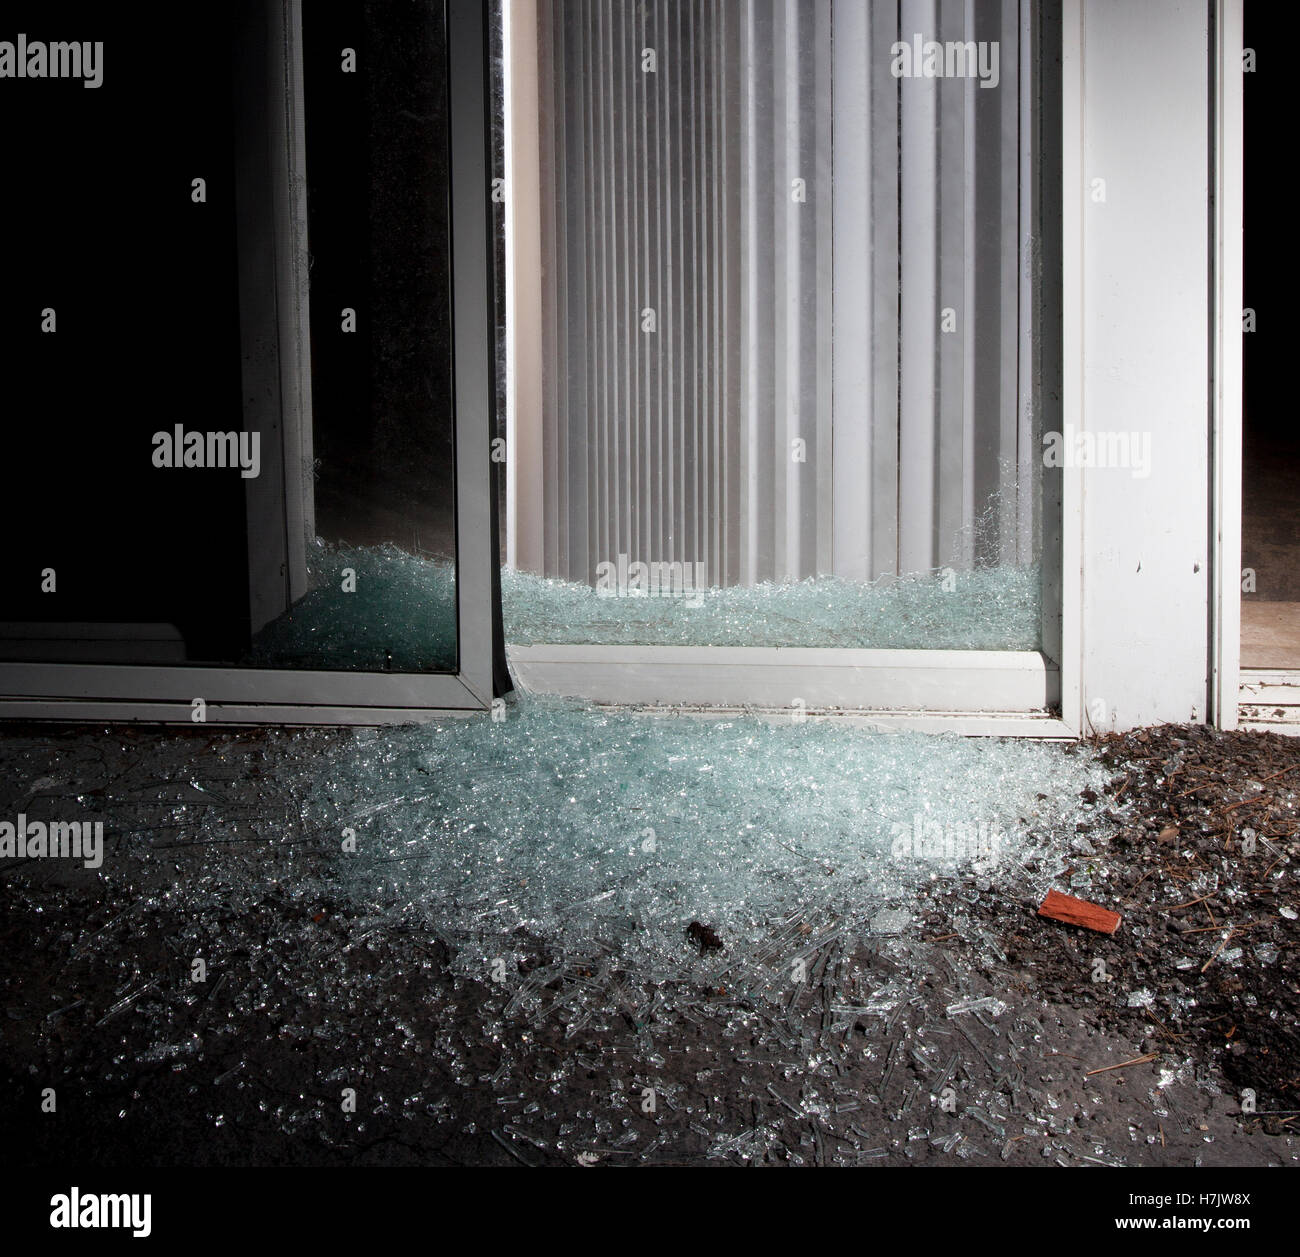 Sliding Glass Door A Criminal Shattered To Enter Home Stock Image